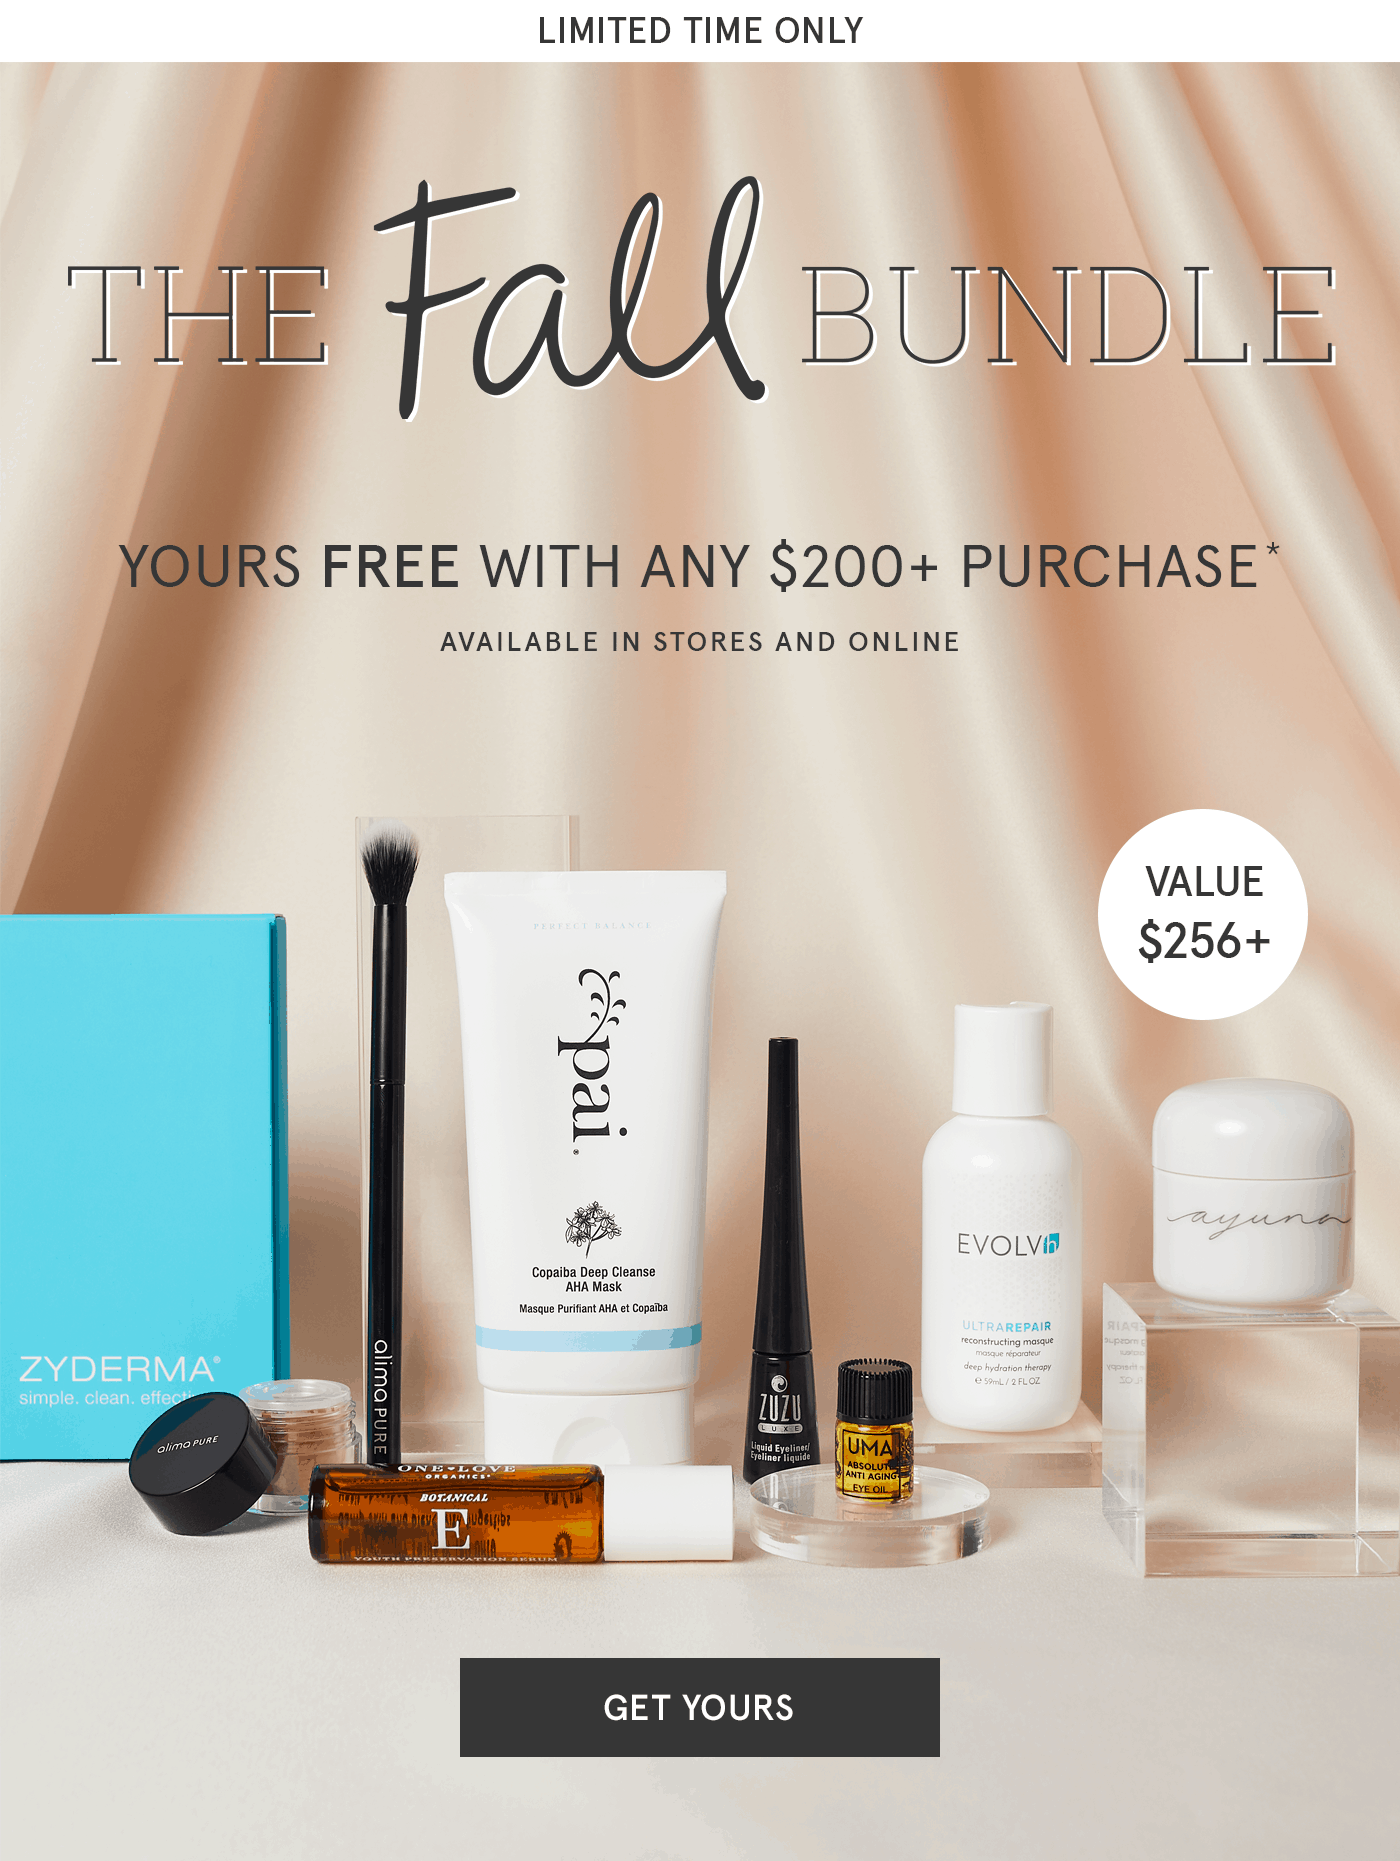 The Detox Market Gift With Purchase Promo: Get The Fall Bundle for FREE With $200+ Purchase!